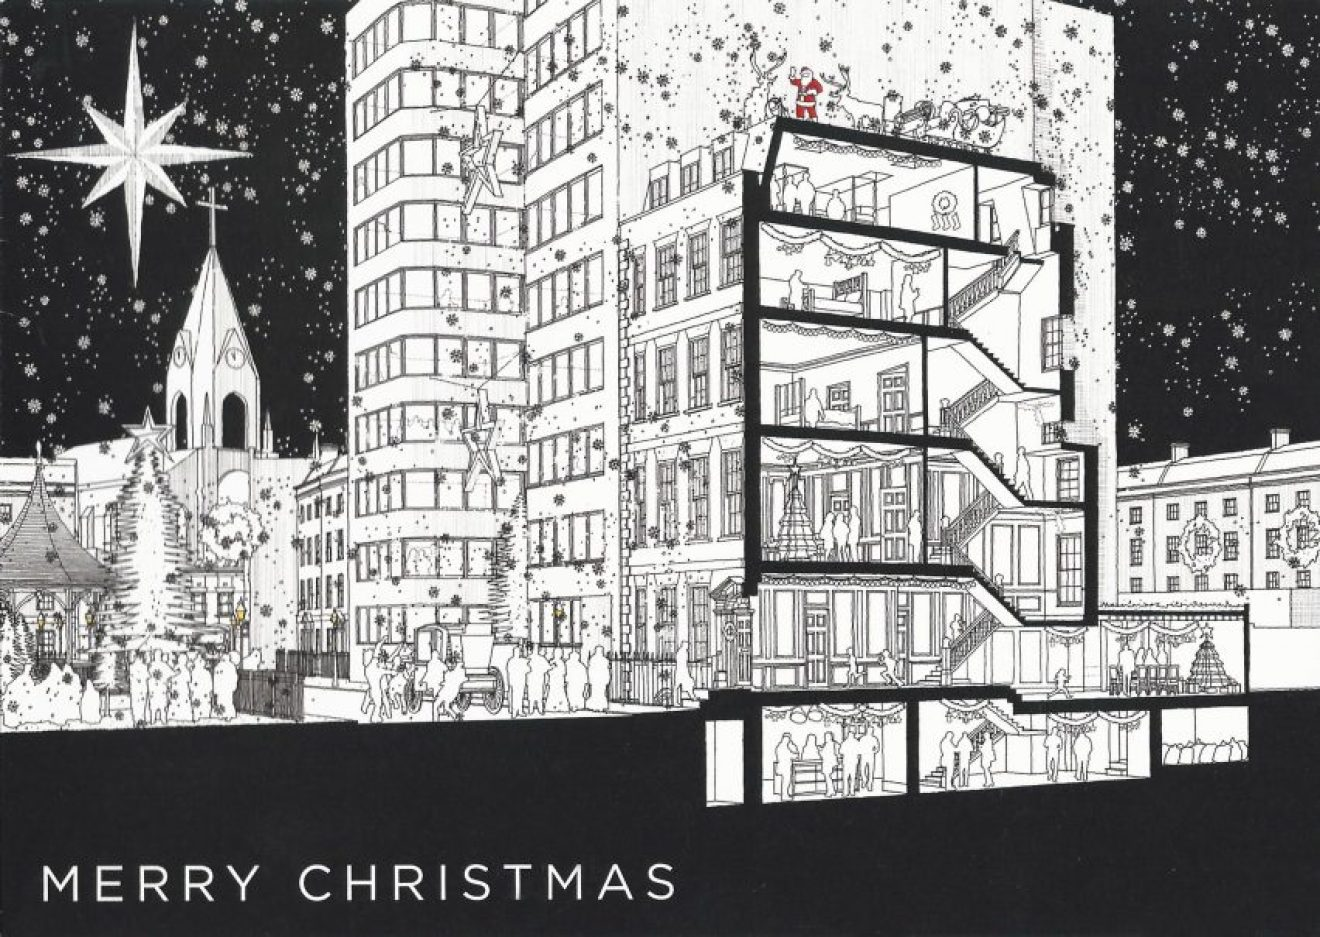 Gibson Thornley Architects' 2018 Christmas card